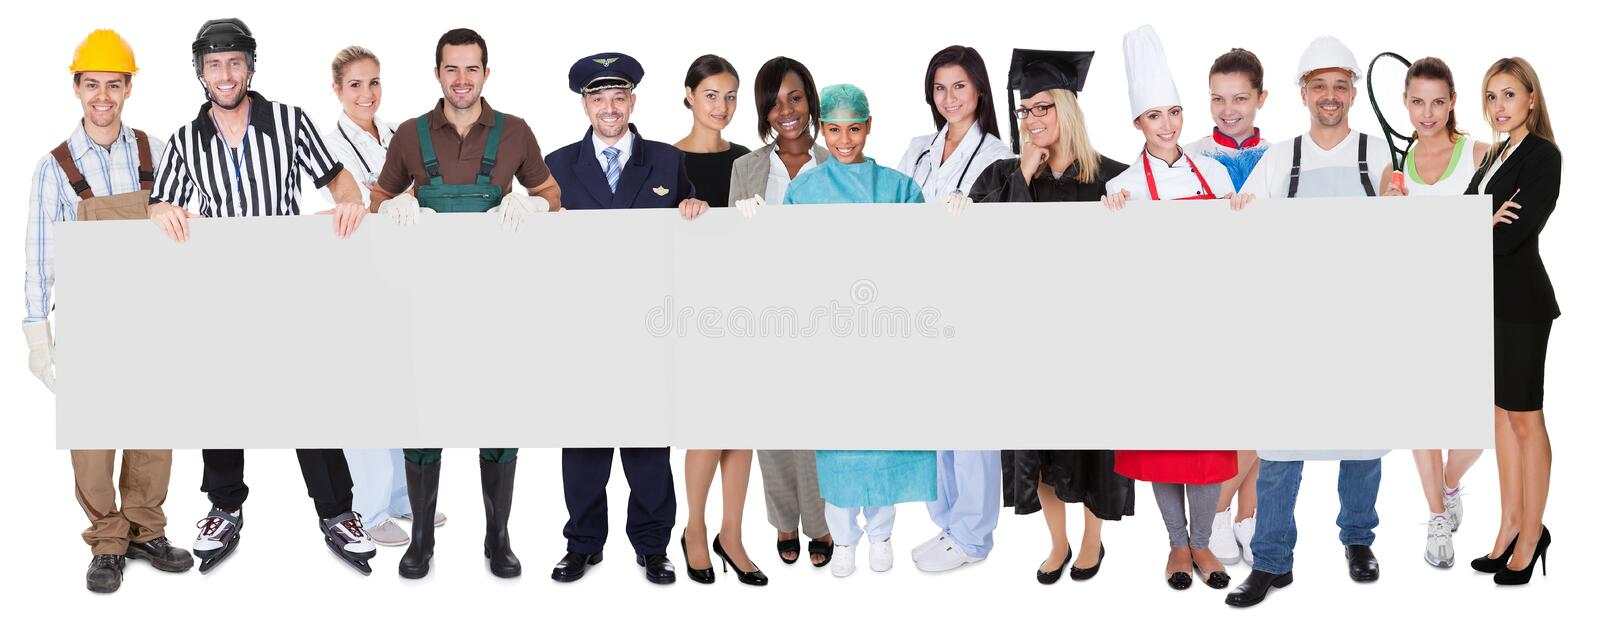 Group of diverse professionals stock photography